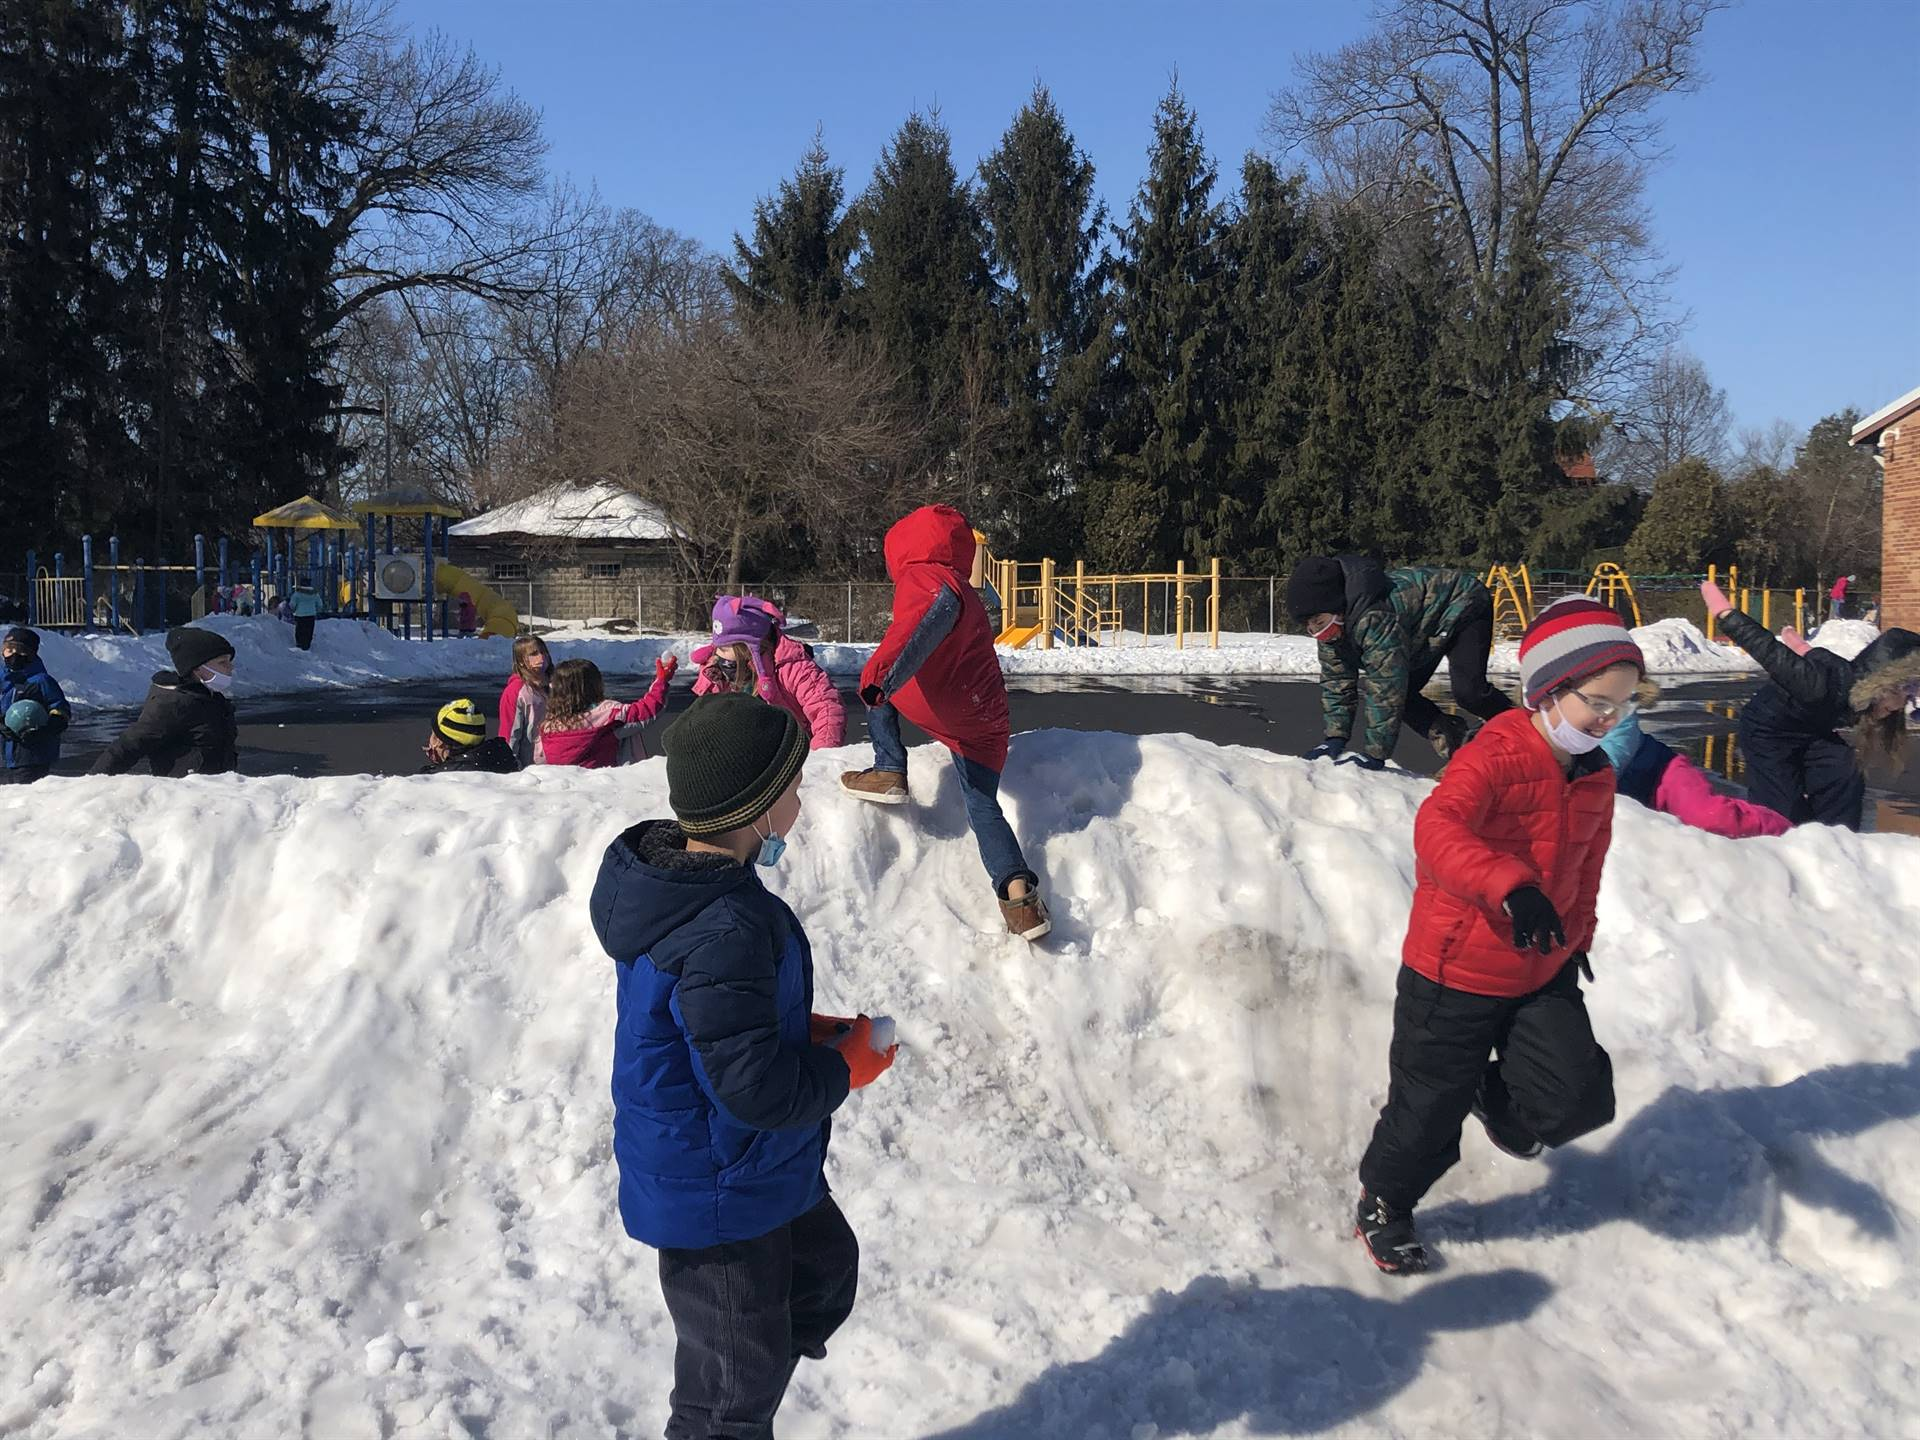 Mrs. Dotson's Snow Play